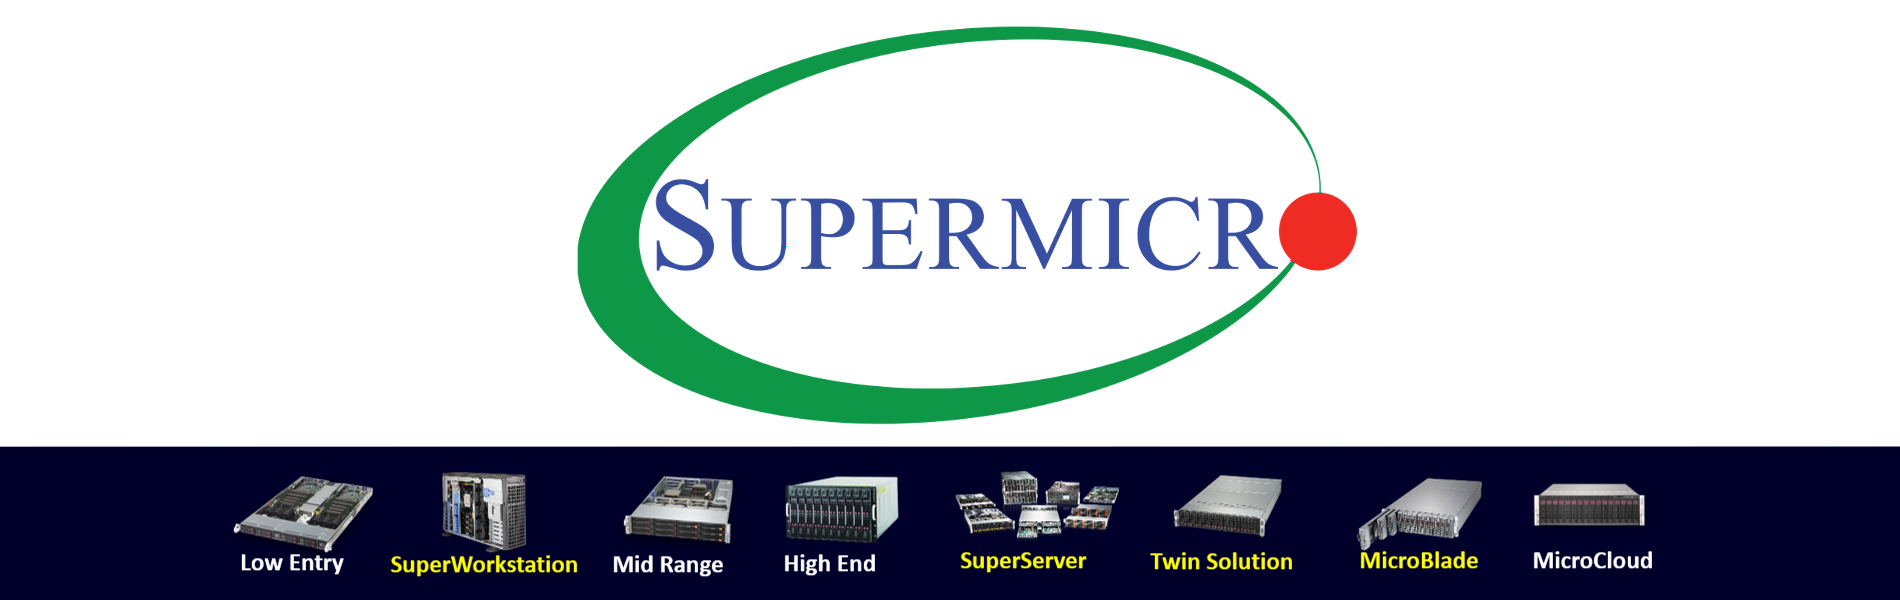 supermicro-products